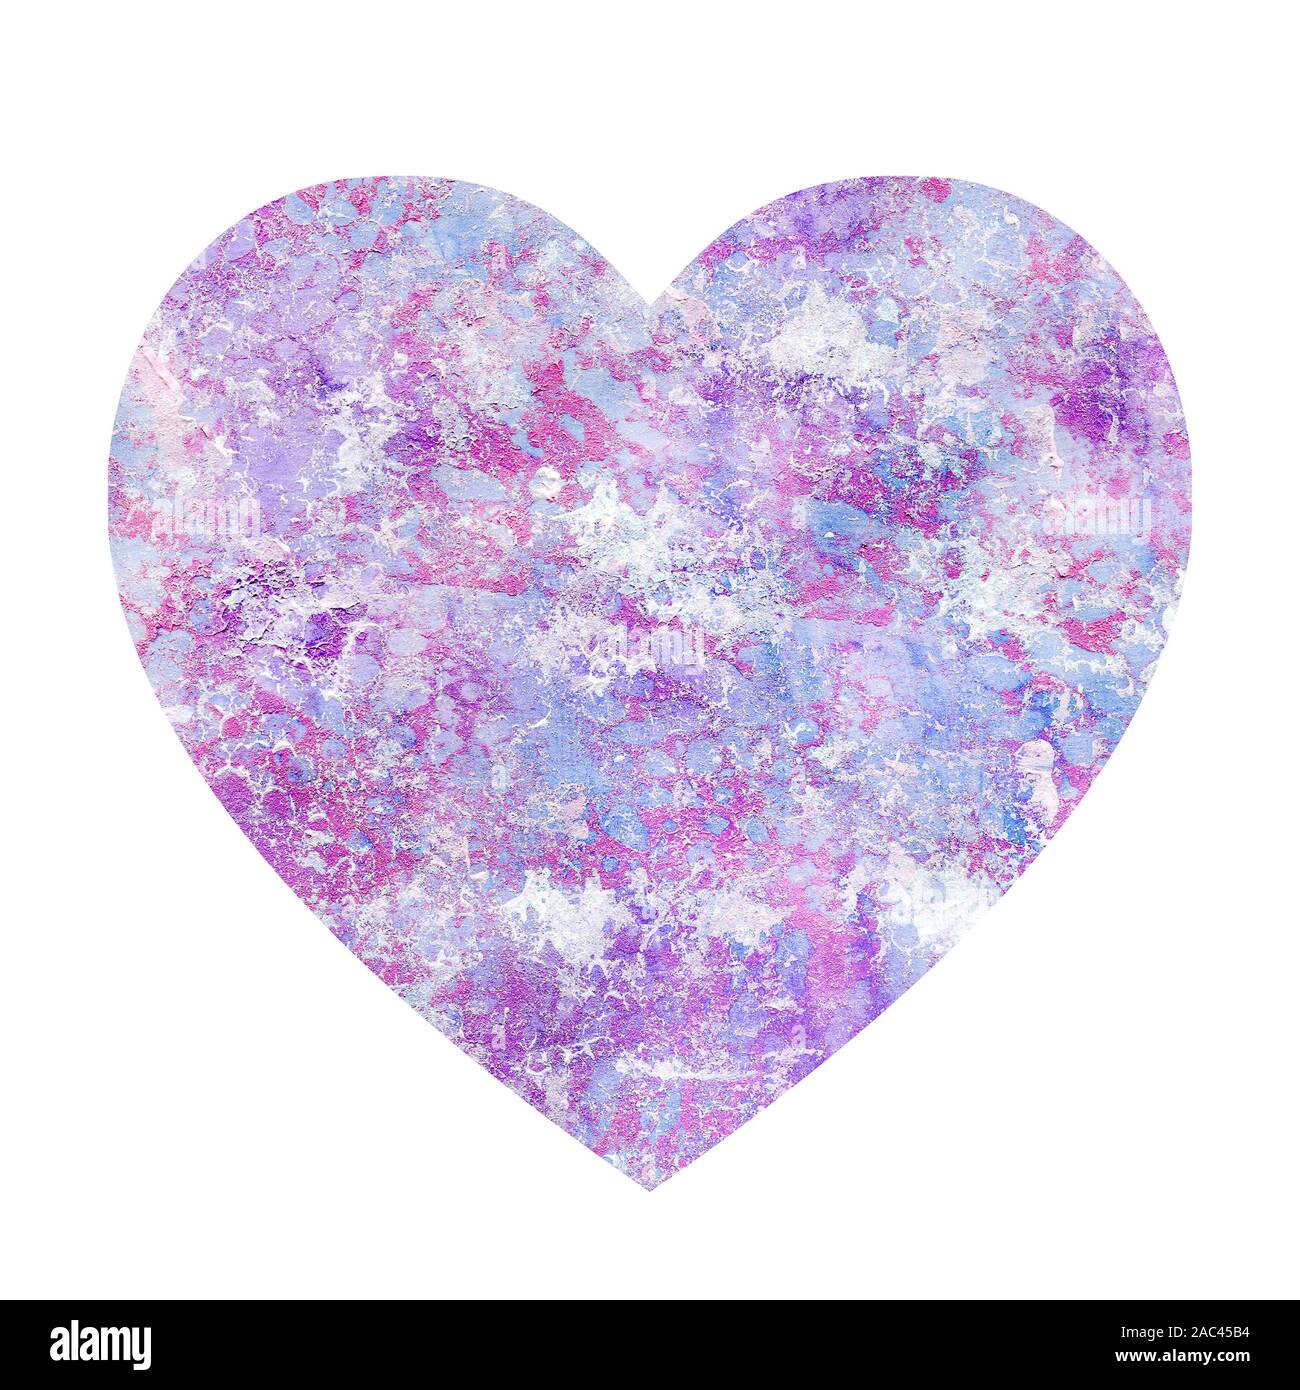 Grunge Abstract Heart Shaped Background Stone And Marble Texture With Scratches Dots And Lines A Multi Colored Pattern With Pink Blue Purple And Stock Photo Alamy